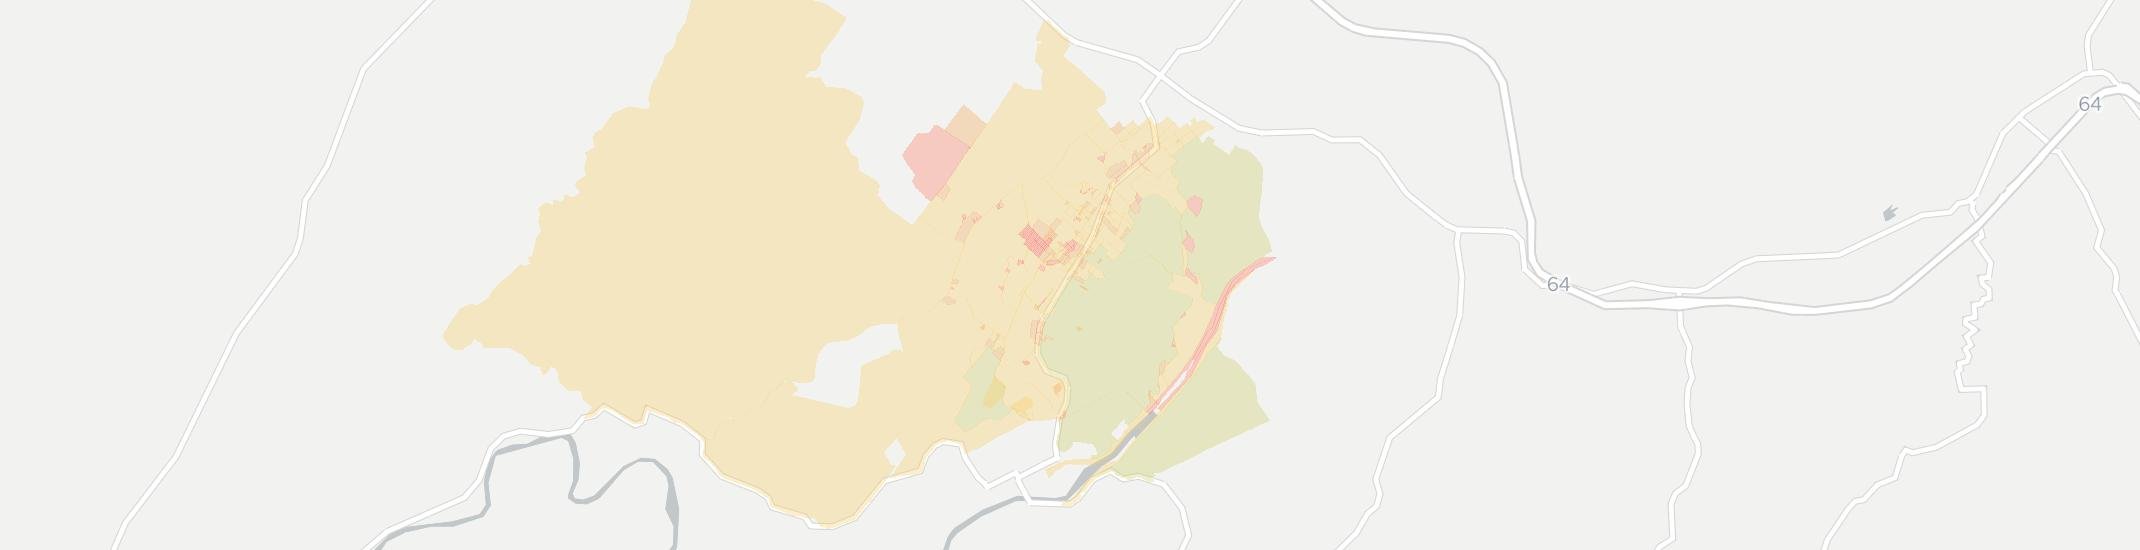 Fairlea Internet Competition Map. Click for interactive map.